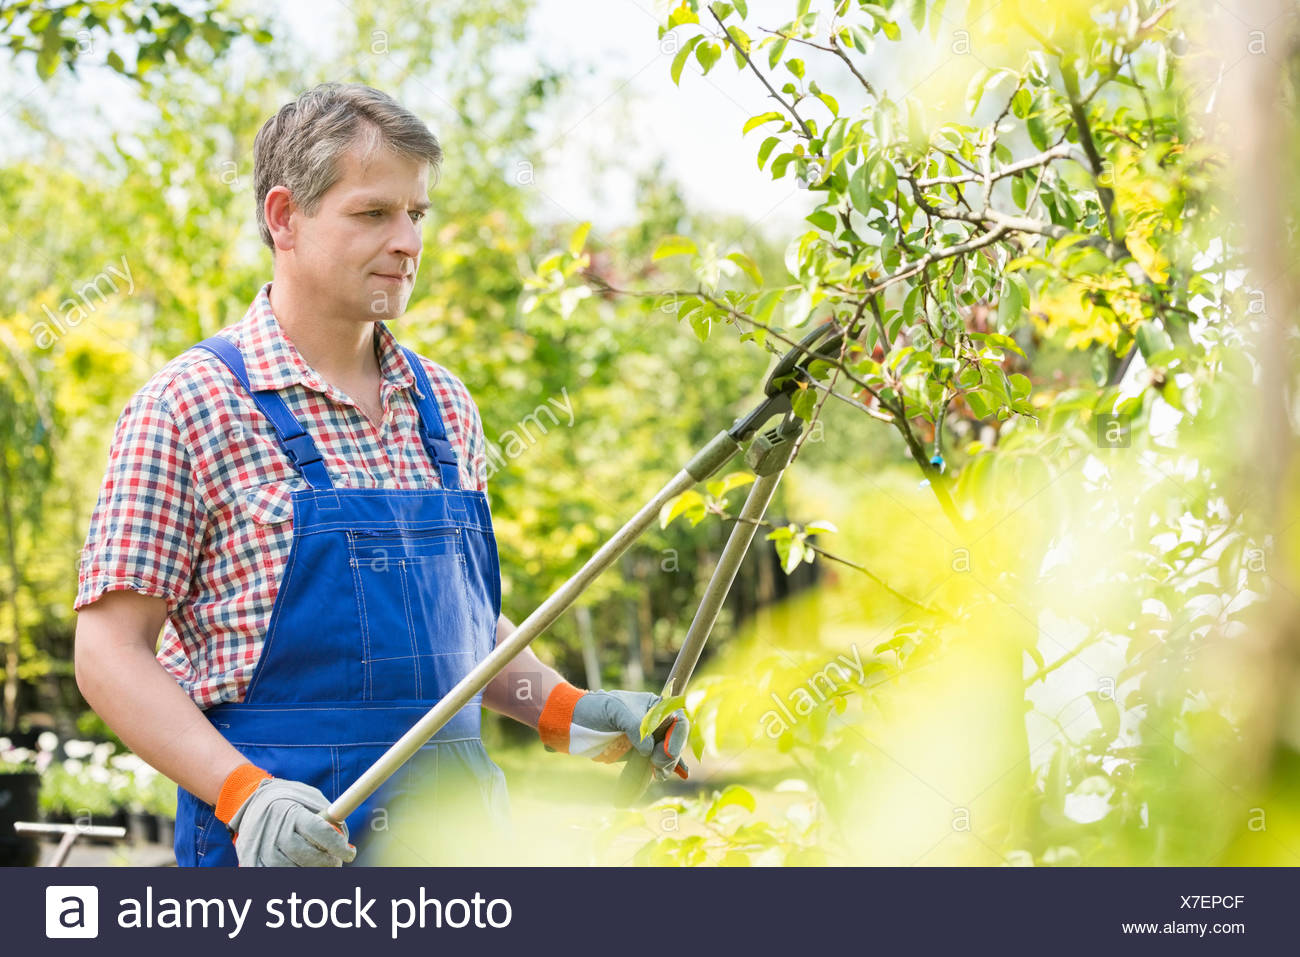 Gardener trimming tree branches at plant nursery - Stock Image